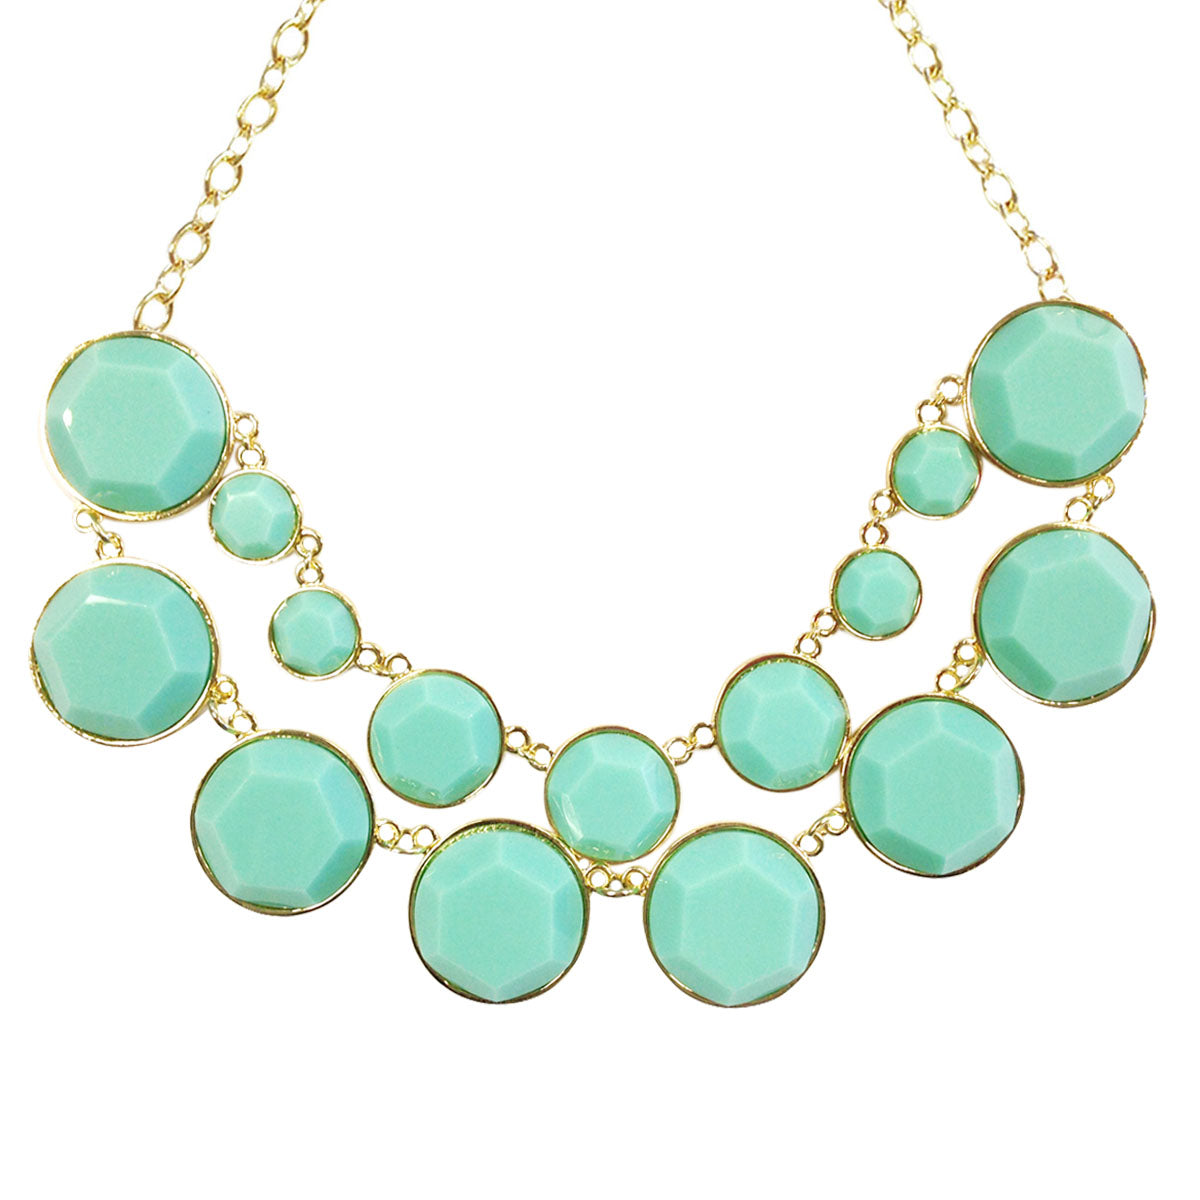 Designer Inspired Double Layer Bubble Necklace